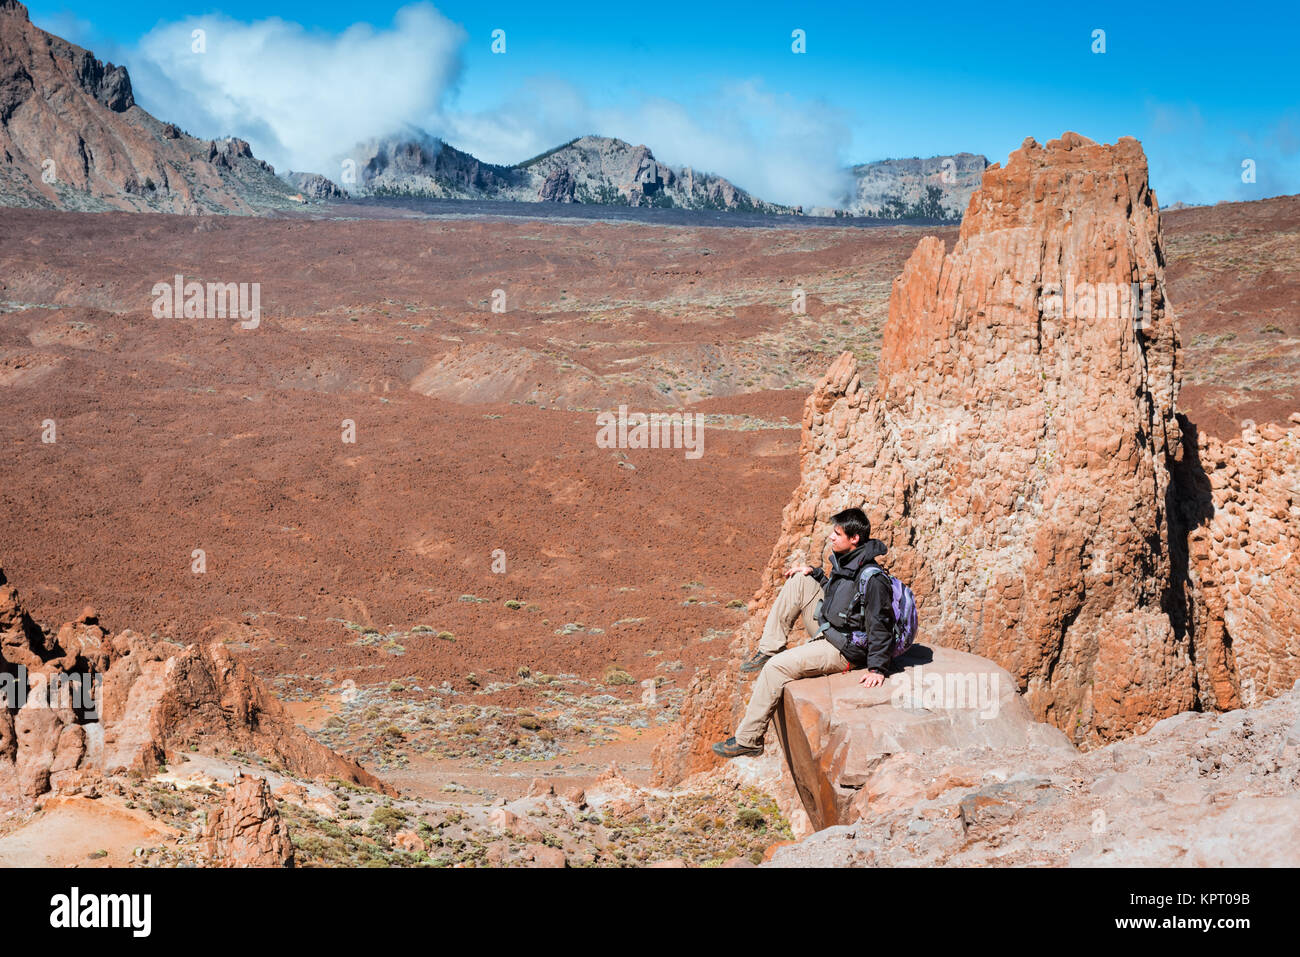 Hiker man hiking Teide national park Tenefire - Stock Image